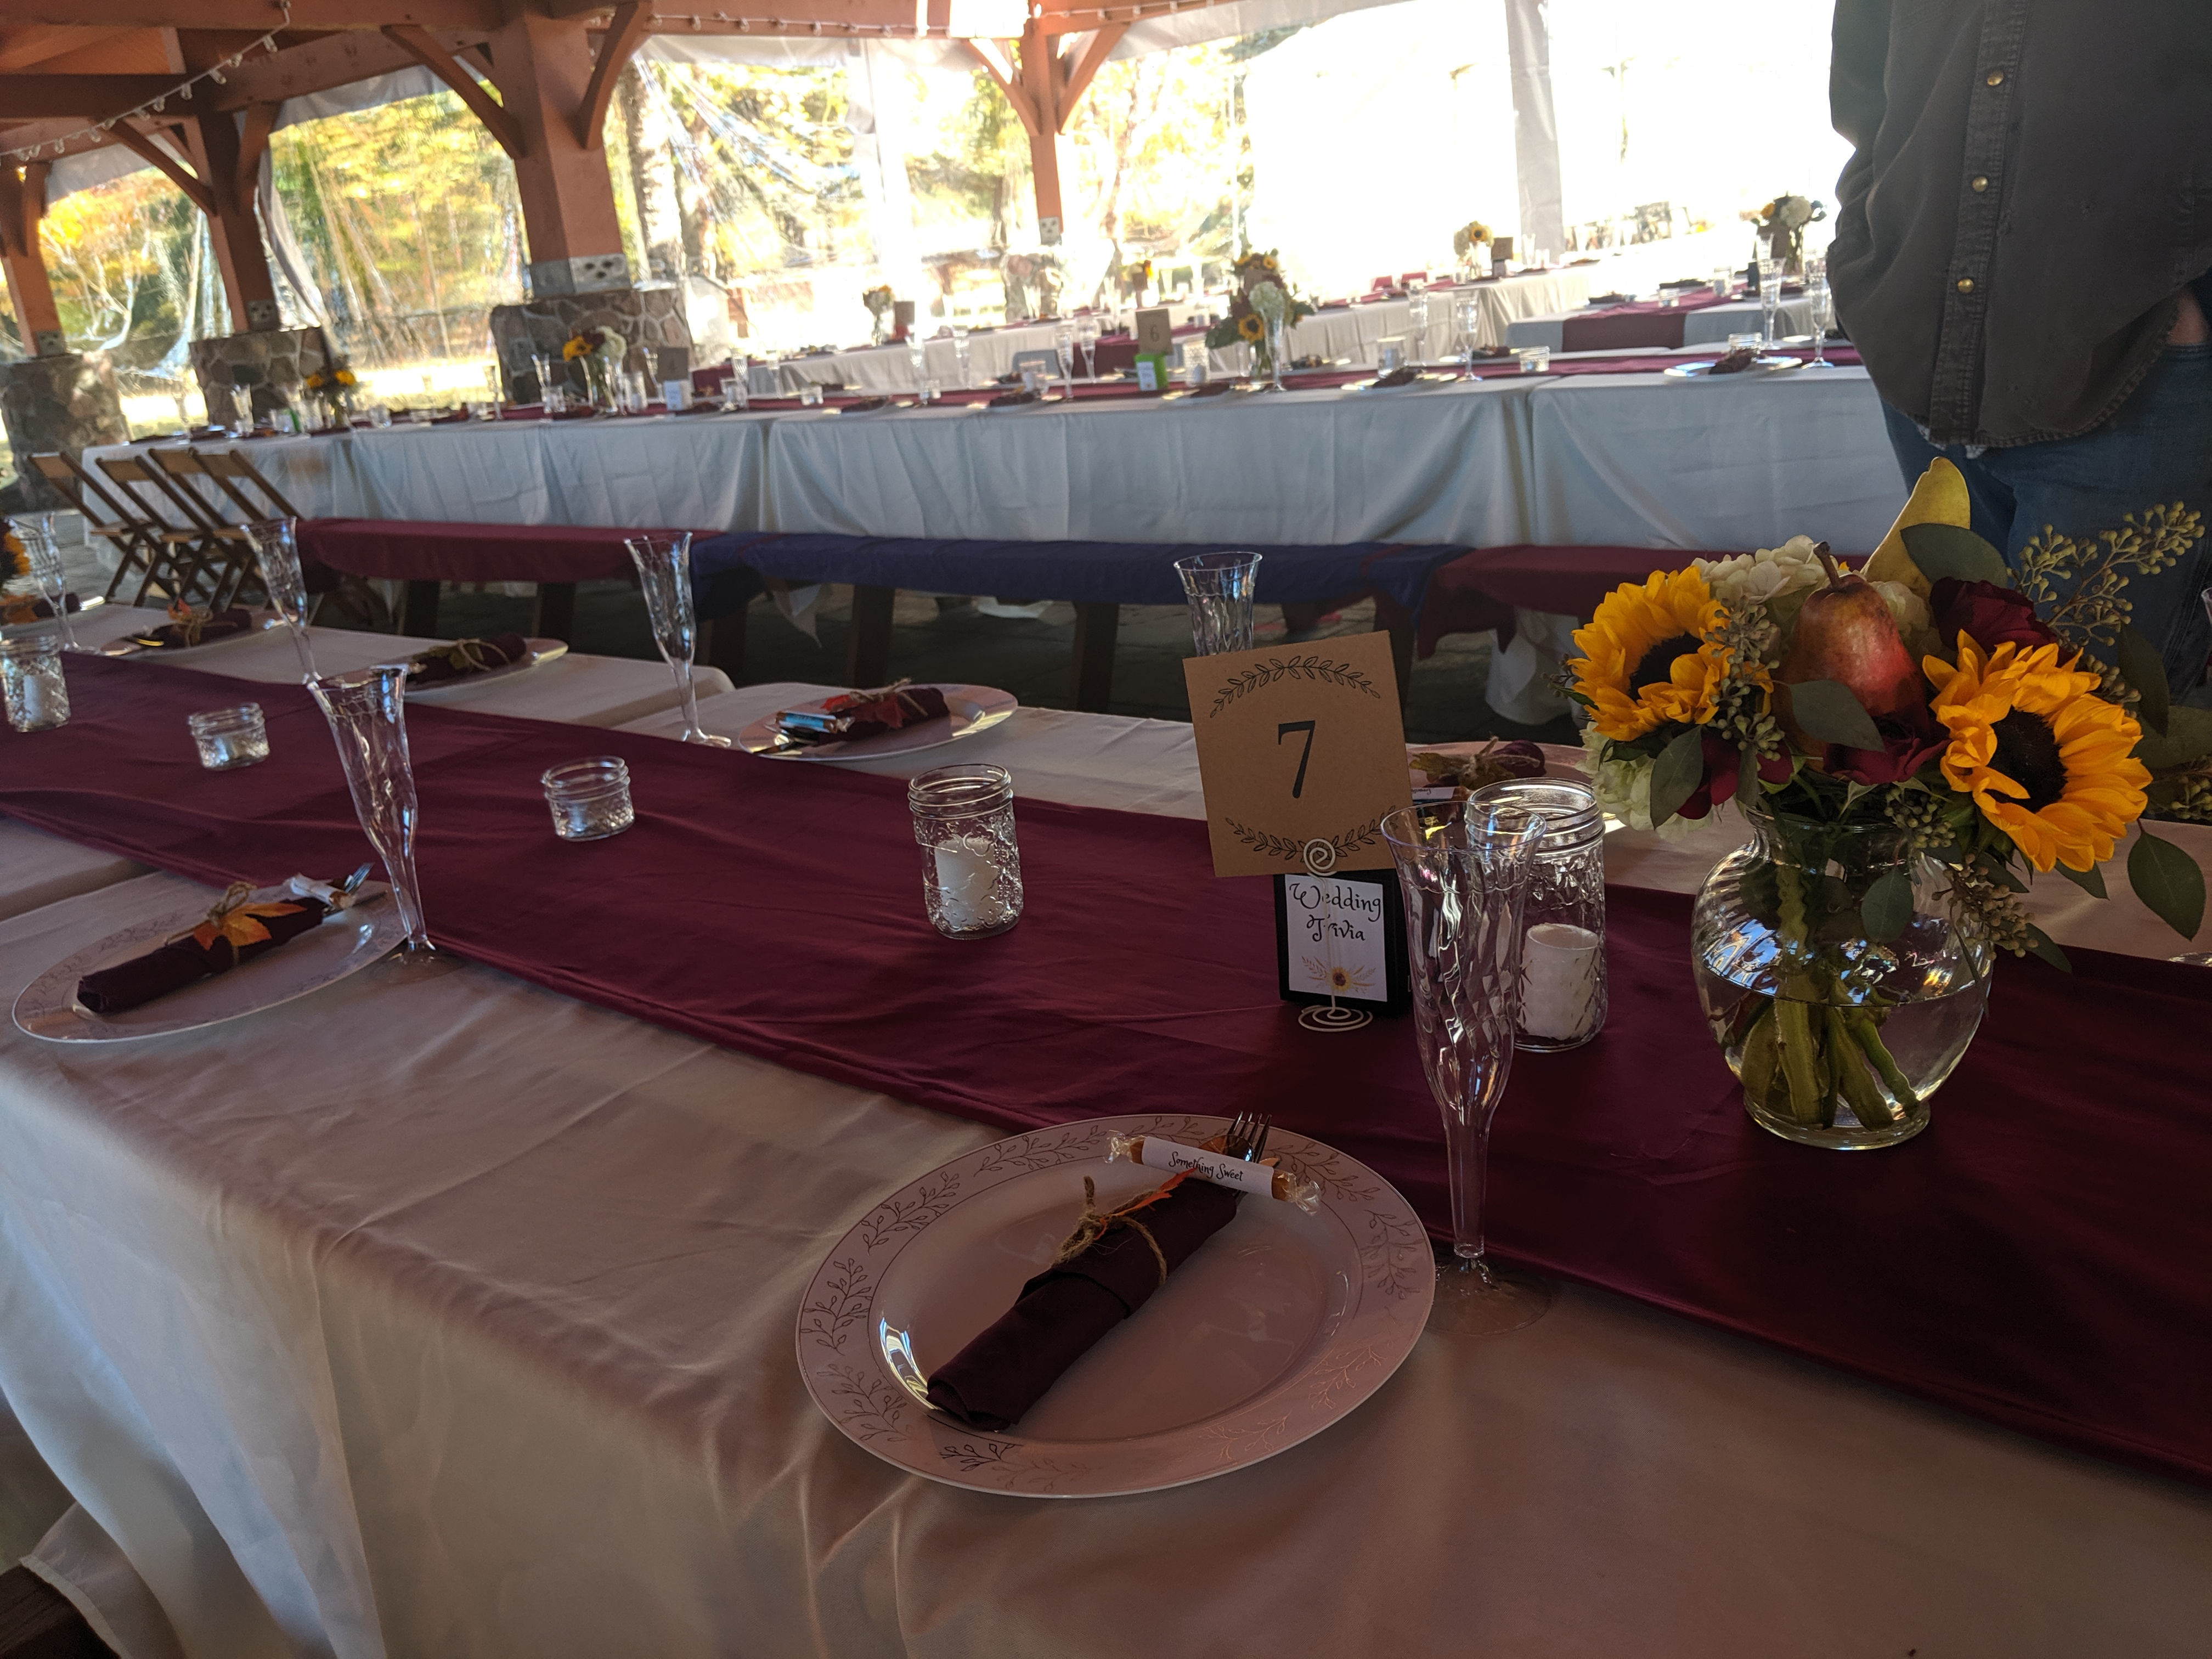 10 Foot Long Burgundy Table Runner